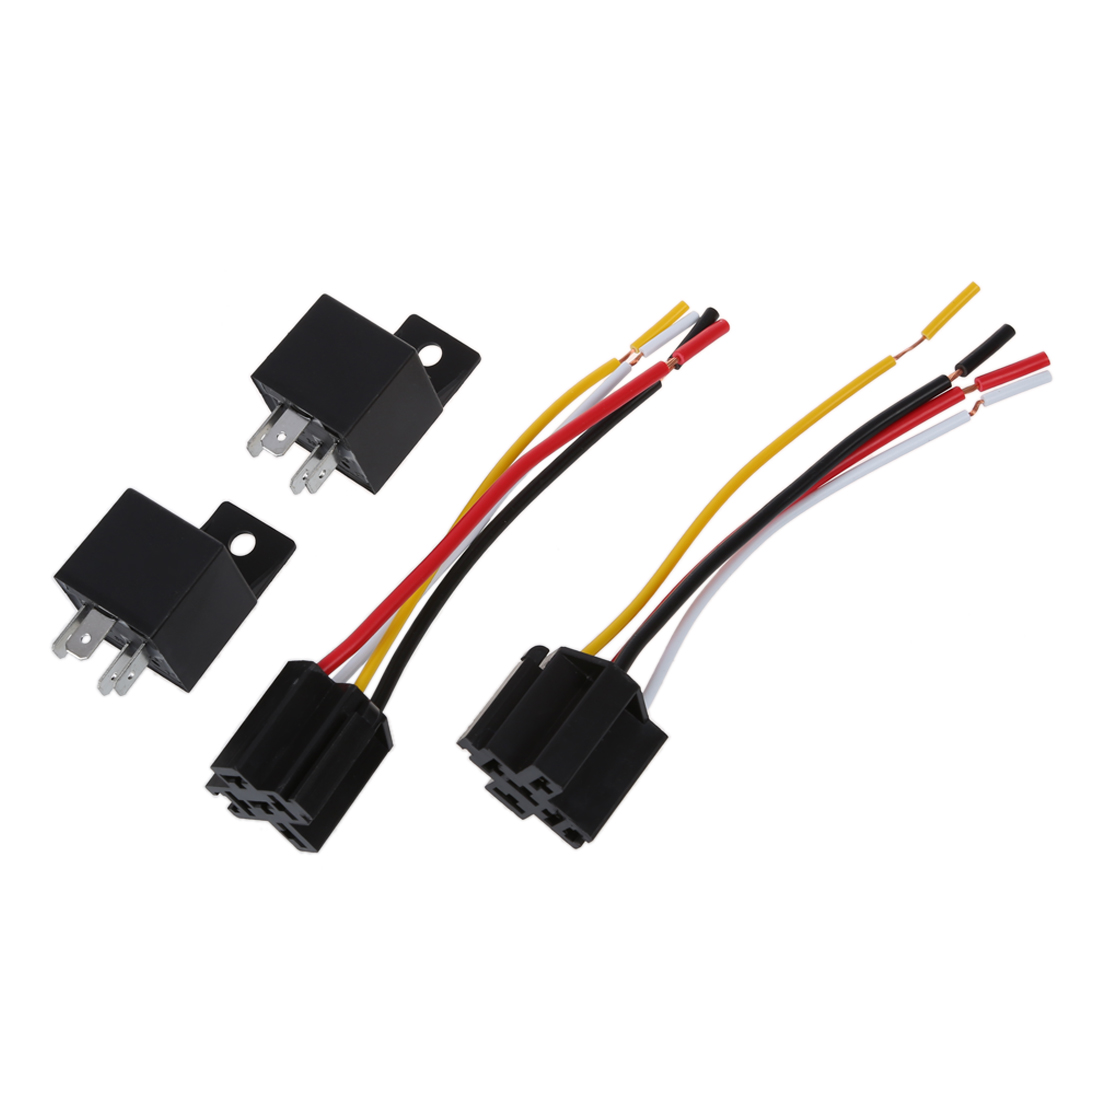 Details about 2 x Car Relay Automotive Relay 12V 40A 4 Pin Wire with on